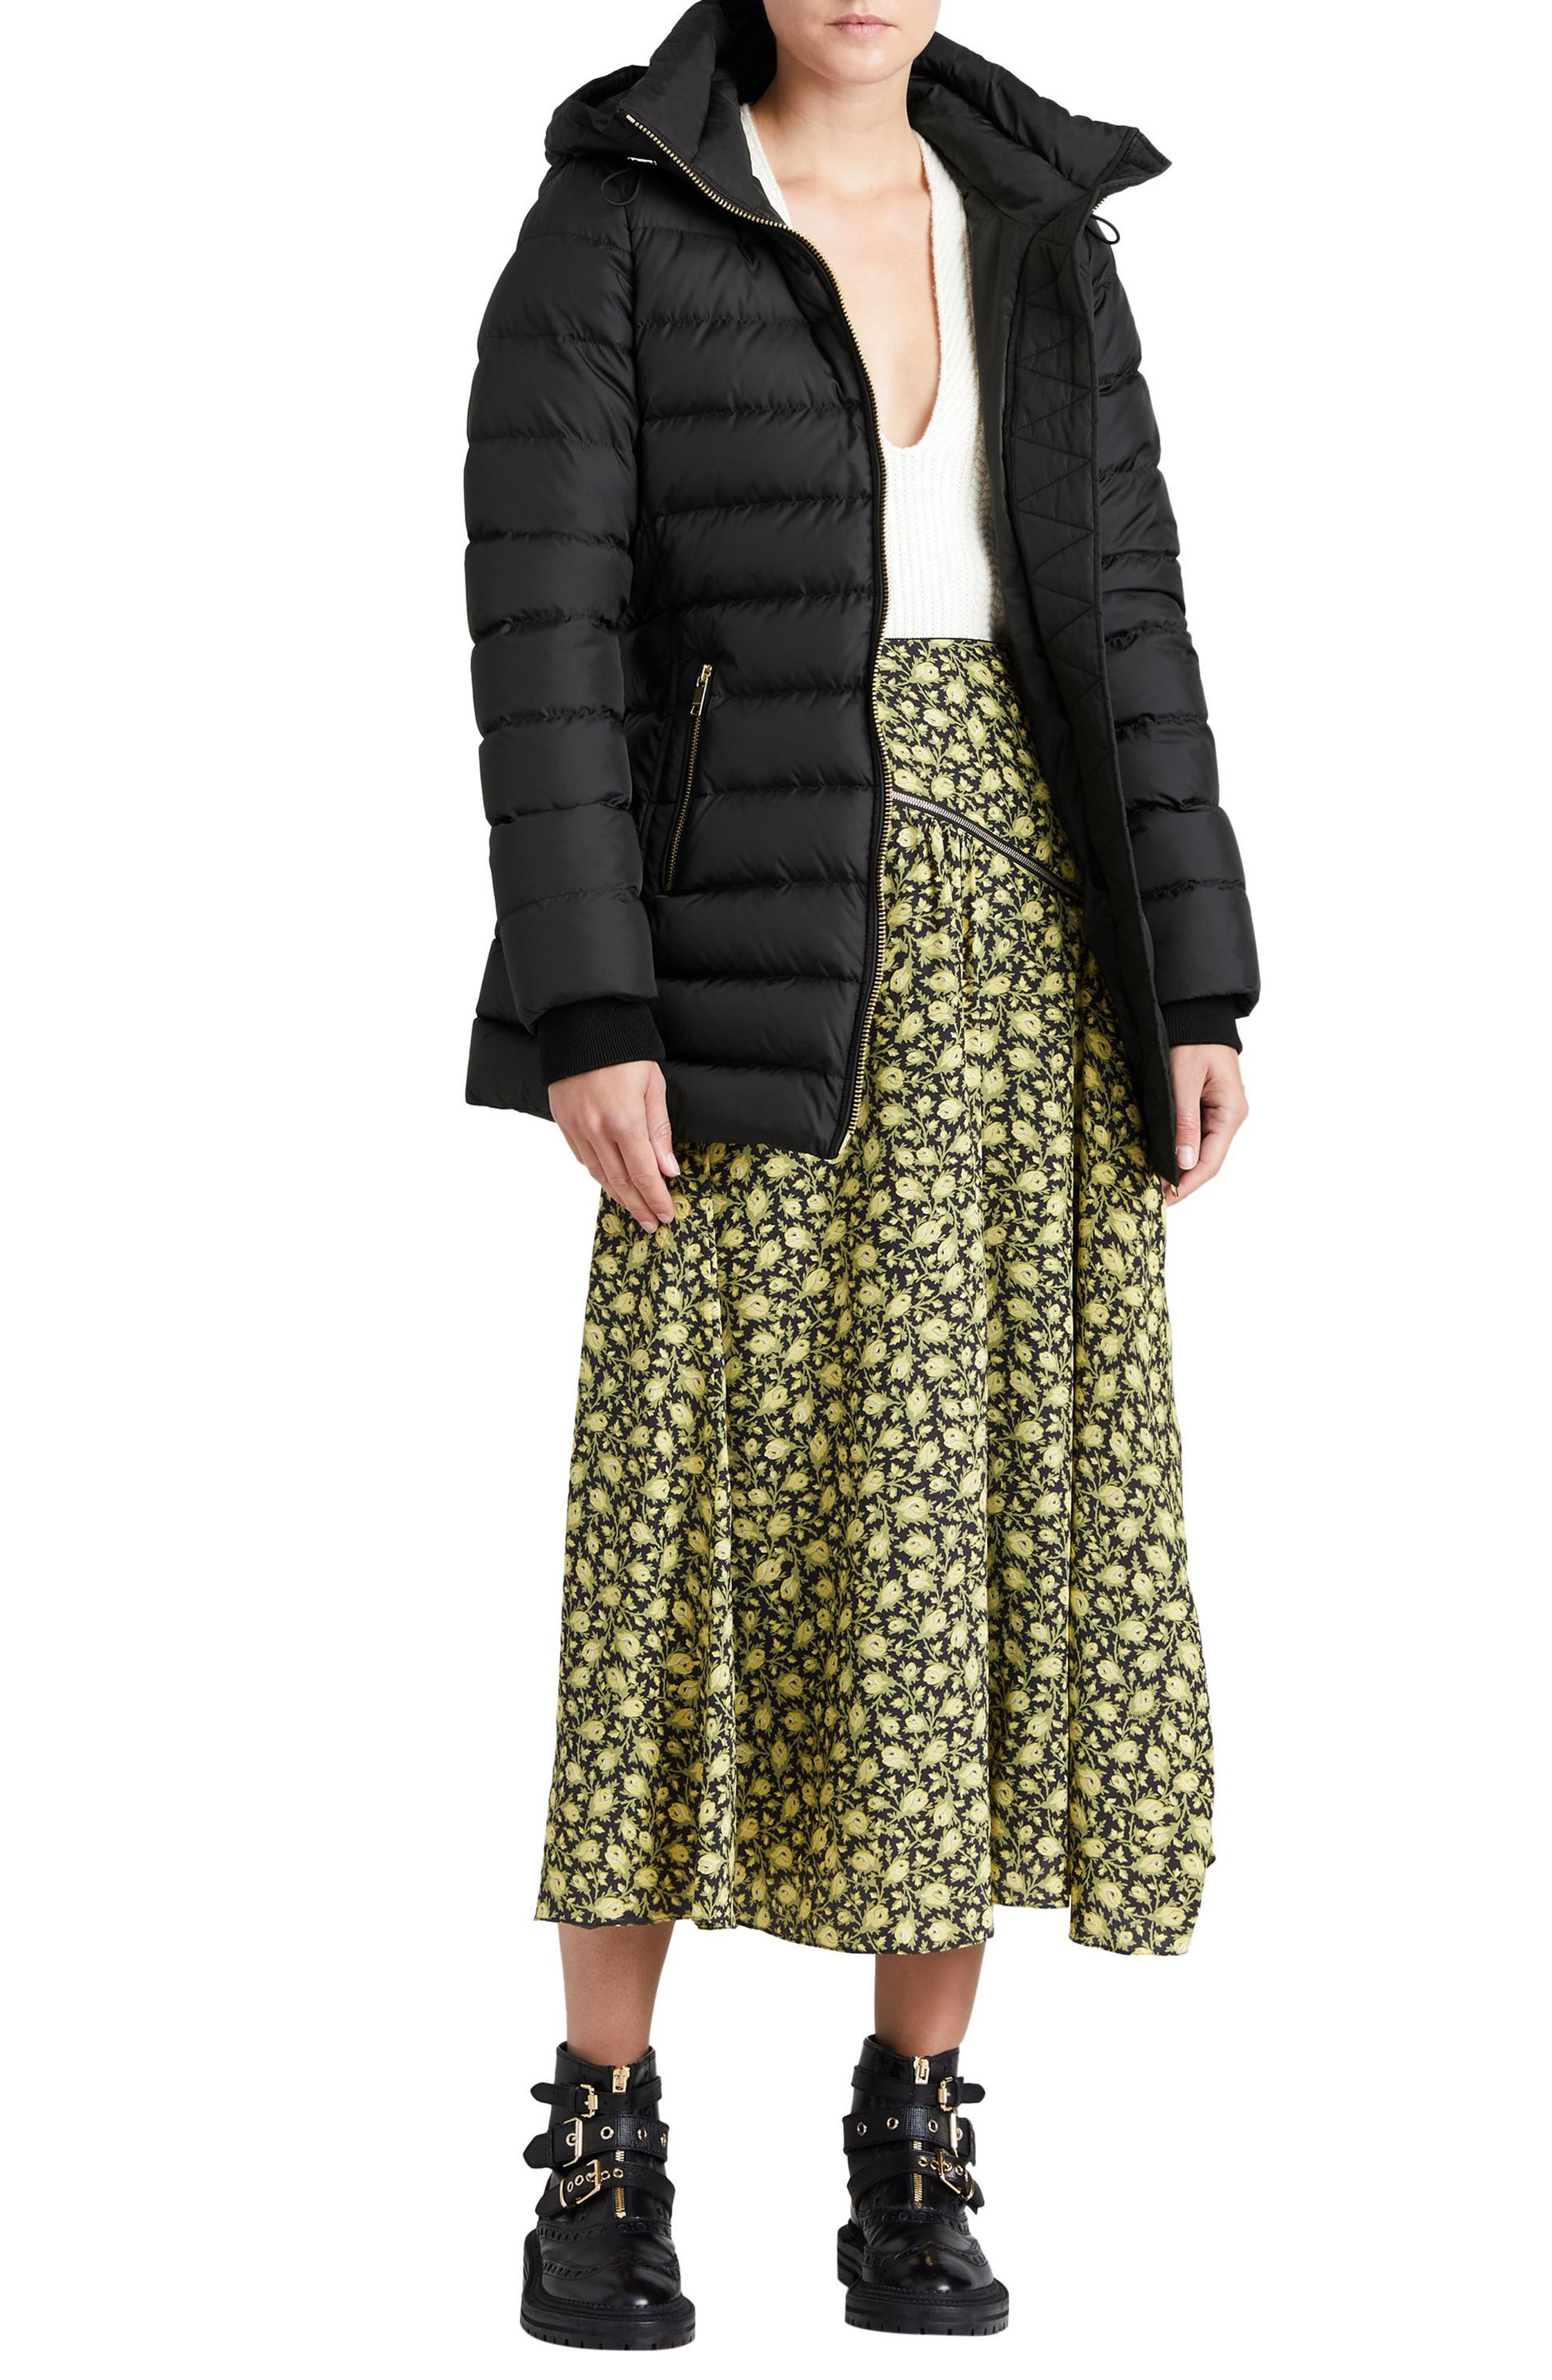 Limefield Hooded Puffer Coat,                             Alternate thumbnail 9, color,                             001